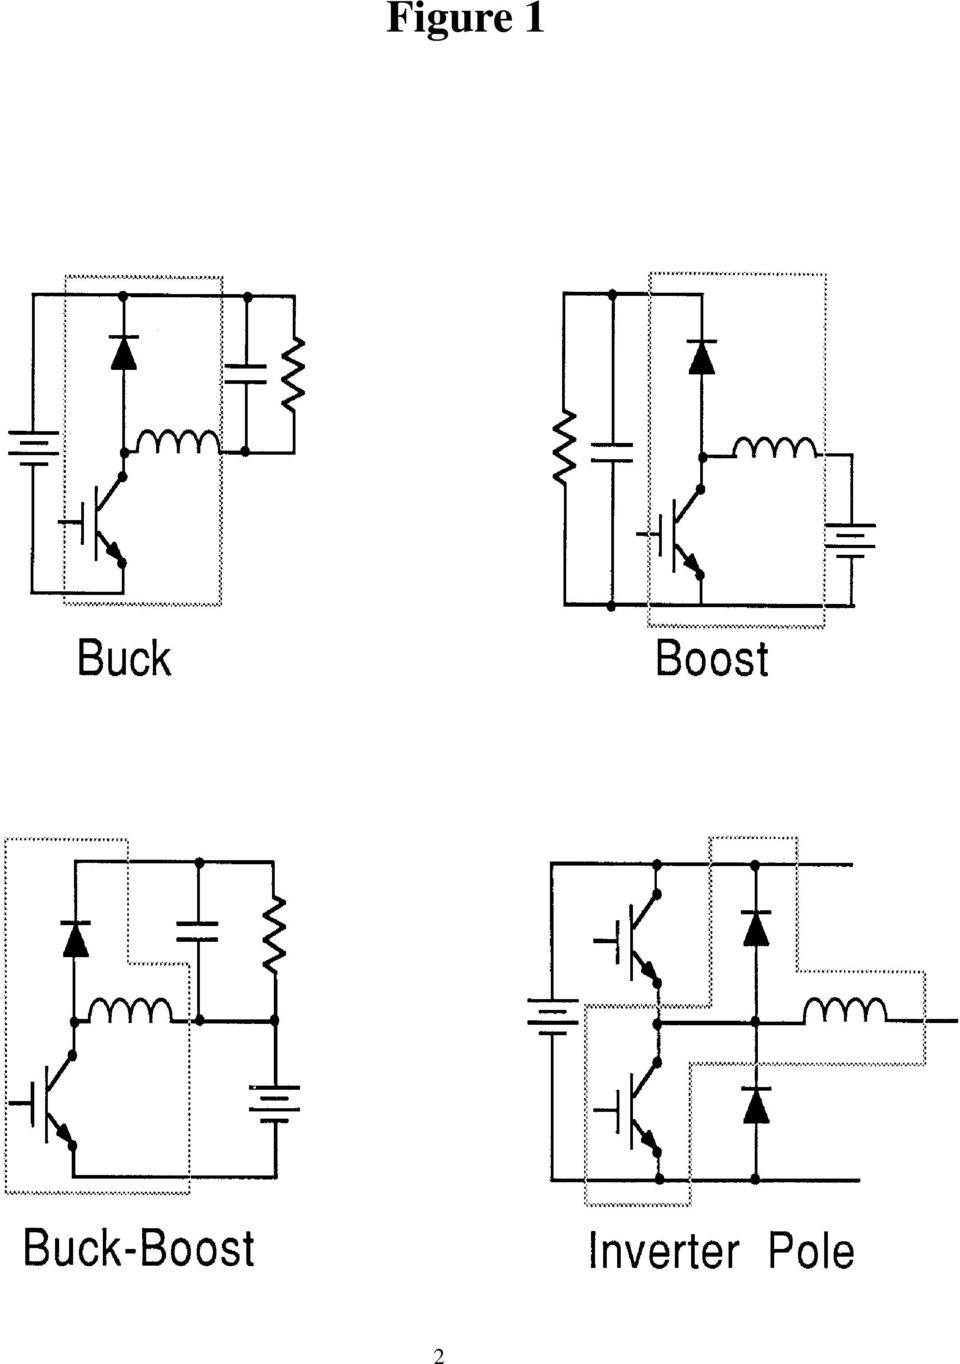 Design Of Snubbers For Power Circuits By Rudy Severns Pdf Figure 3 Simple Inverter Circuit Using Igbt 2